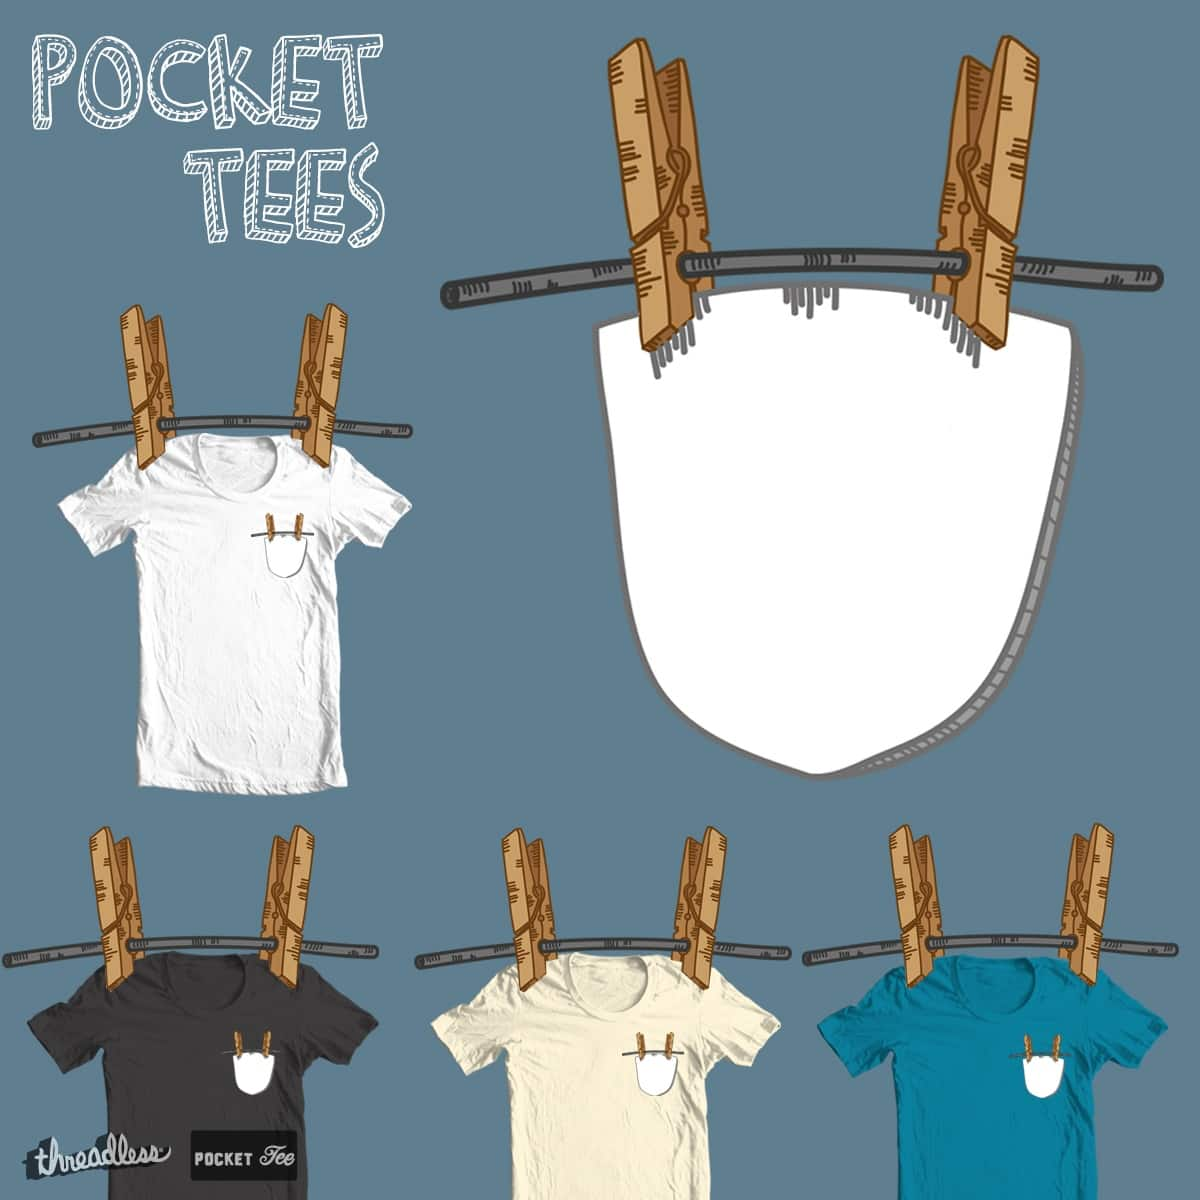 Pocket clean and dry by coclodesign on Threadless